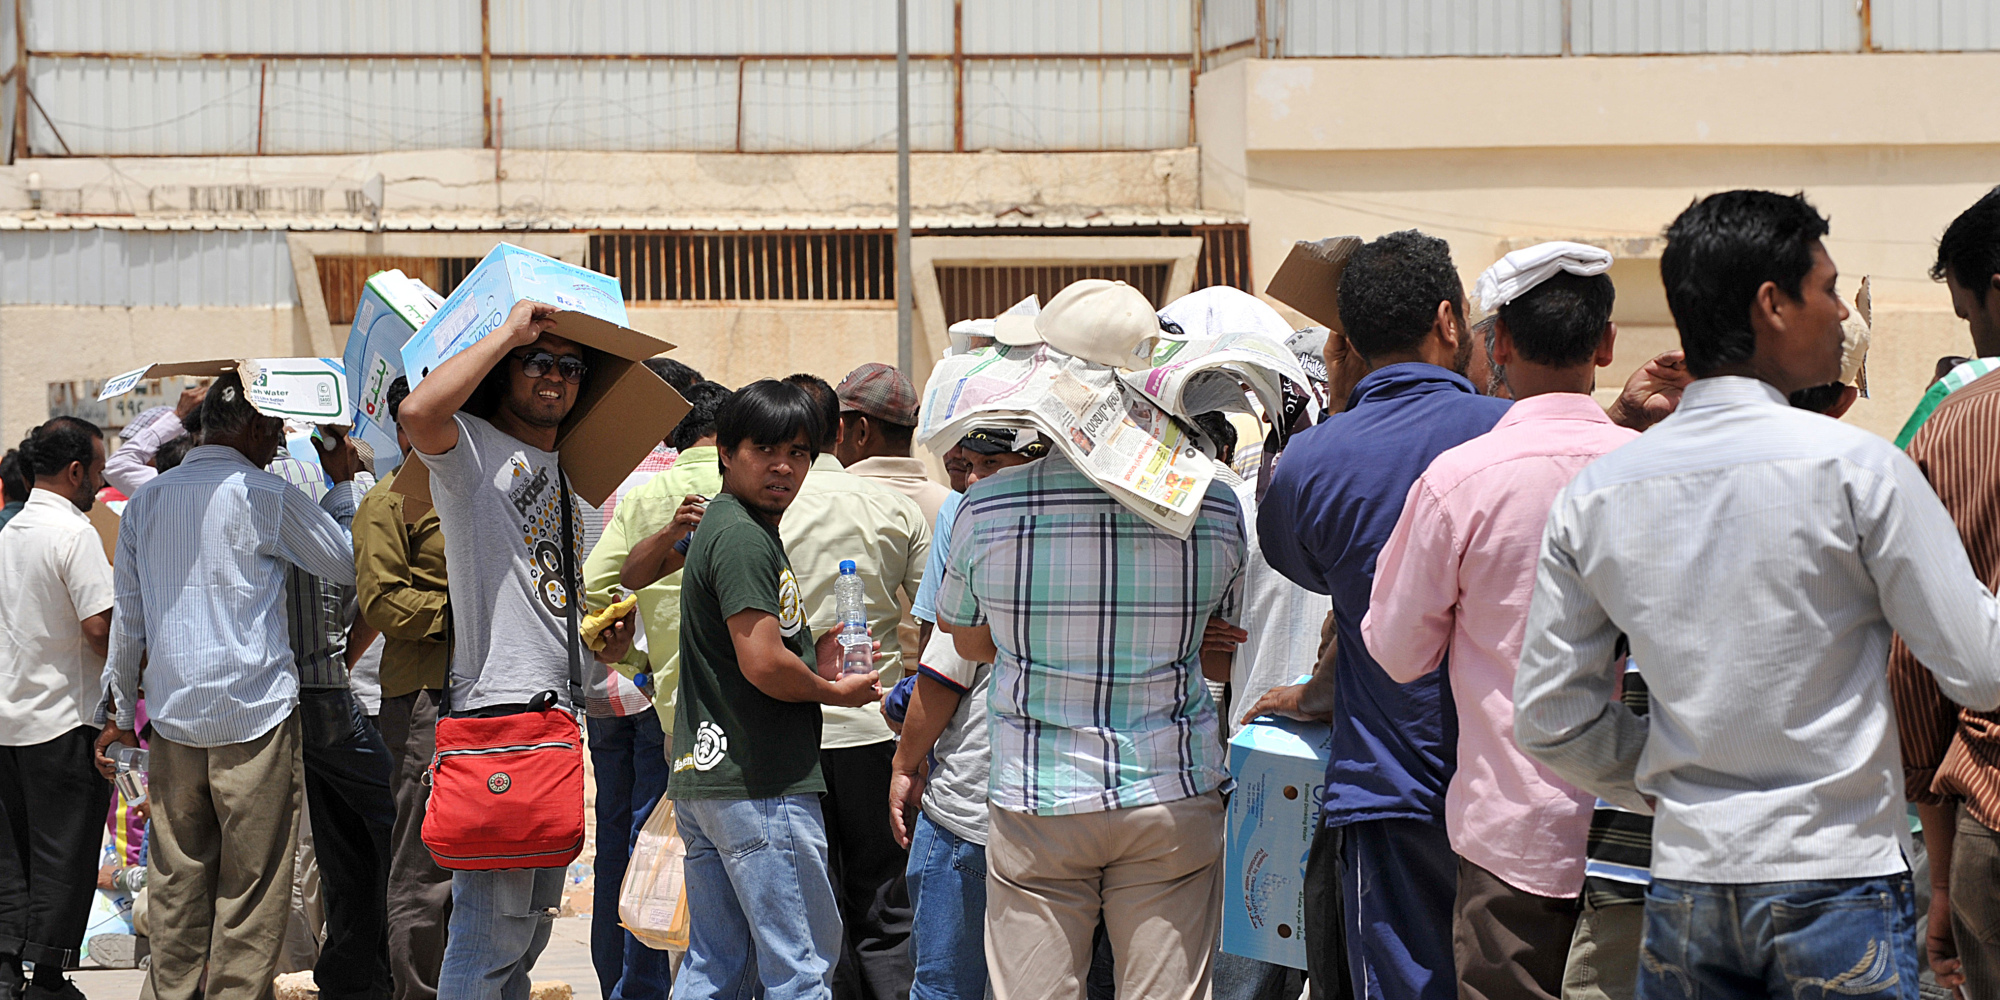 Al-Shall: The wages of Kuwaitis and foreigners in the government sector far exceed the private sector